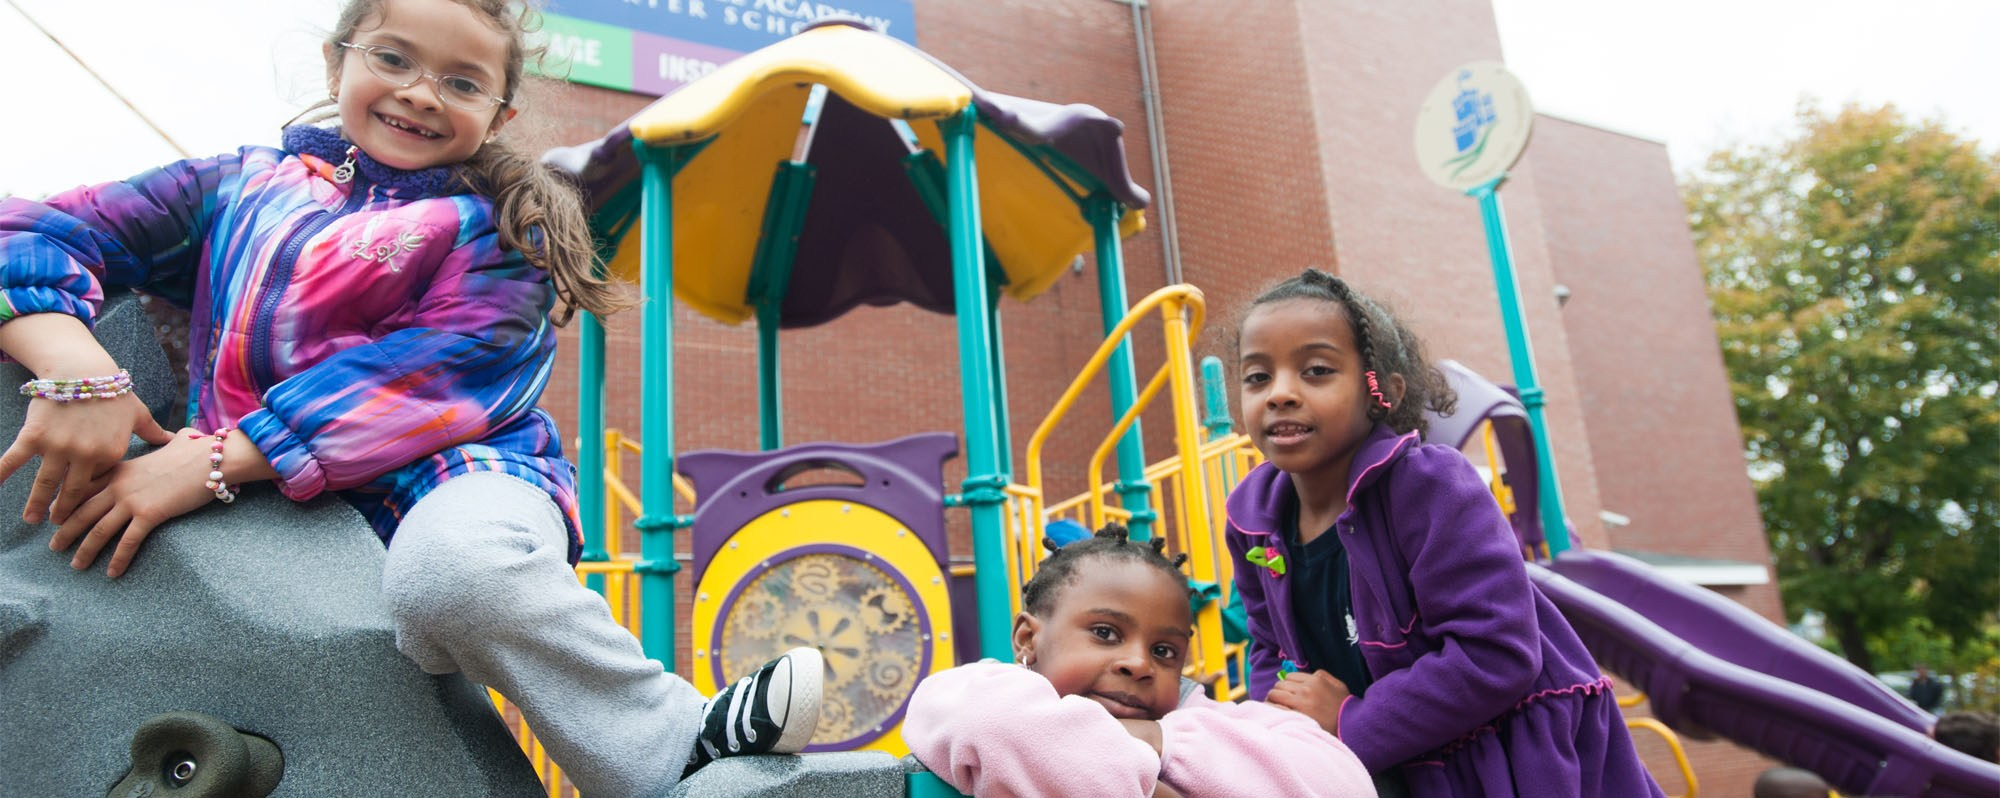 Early Childhood students on playground structure